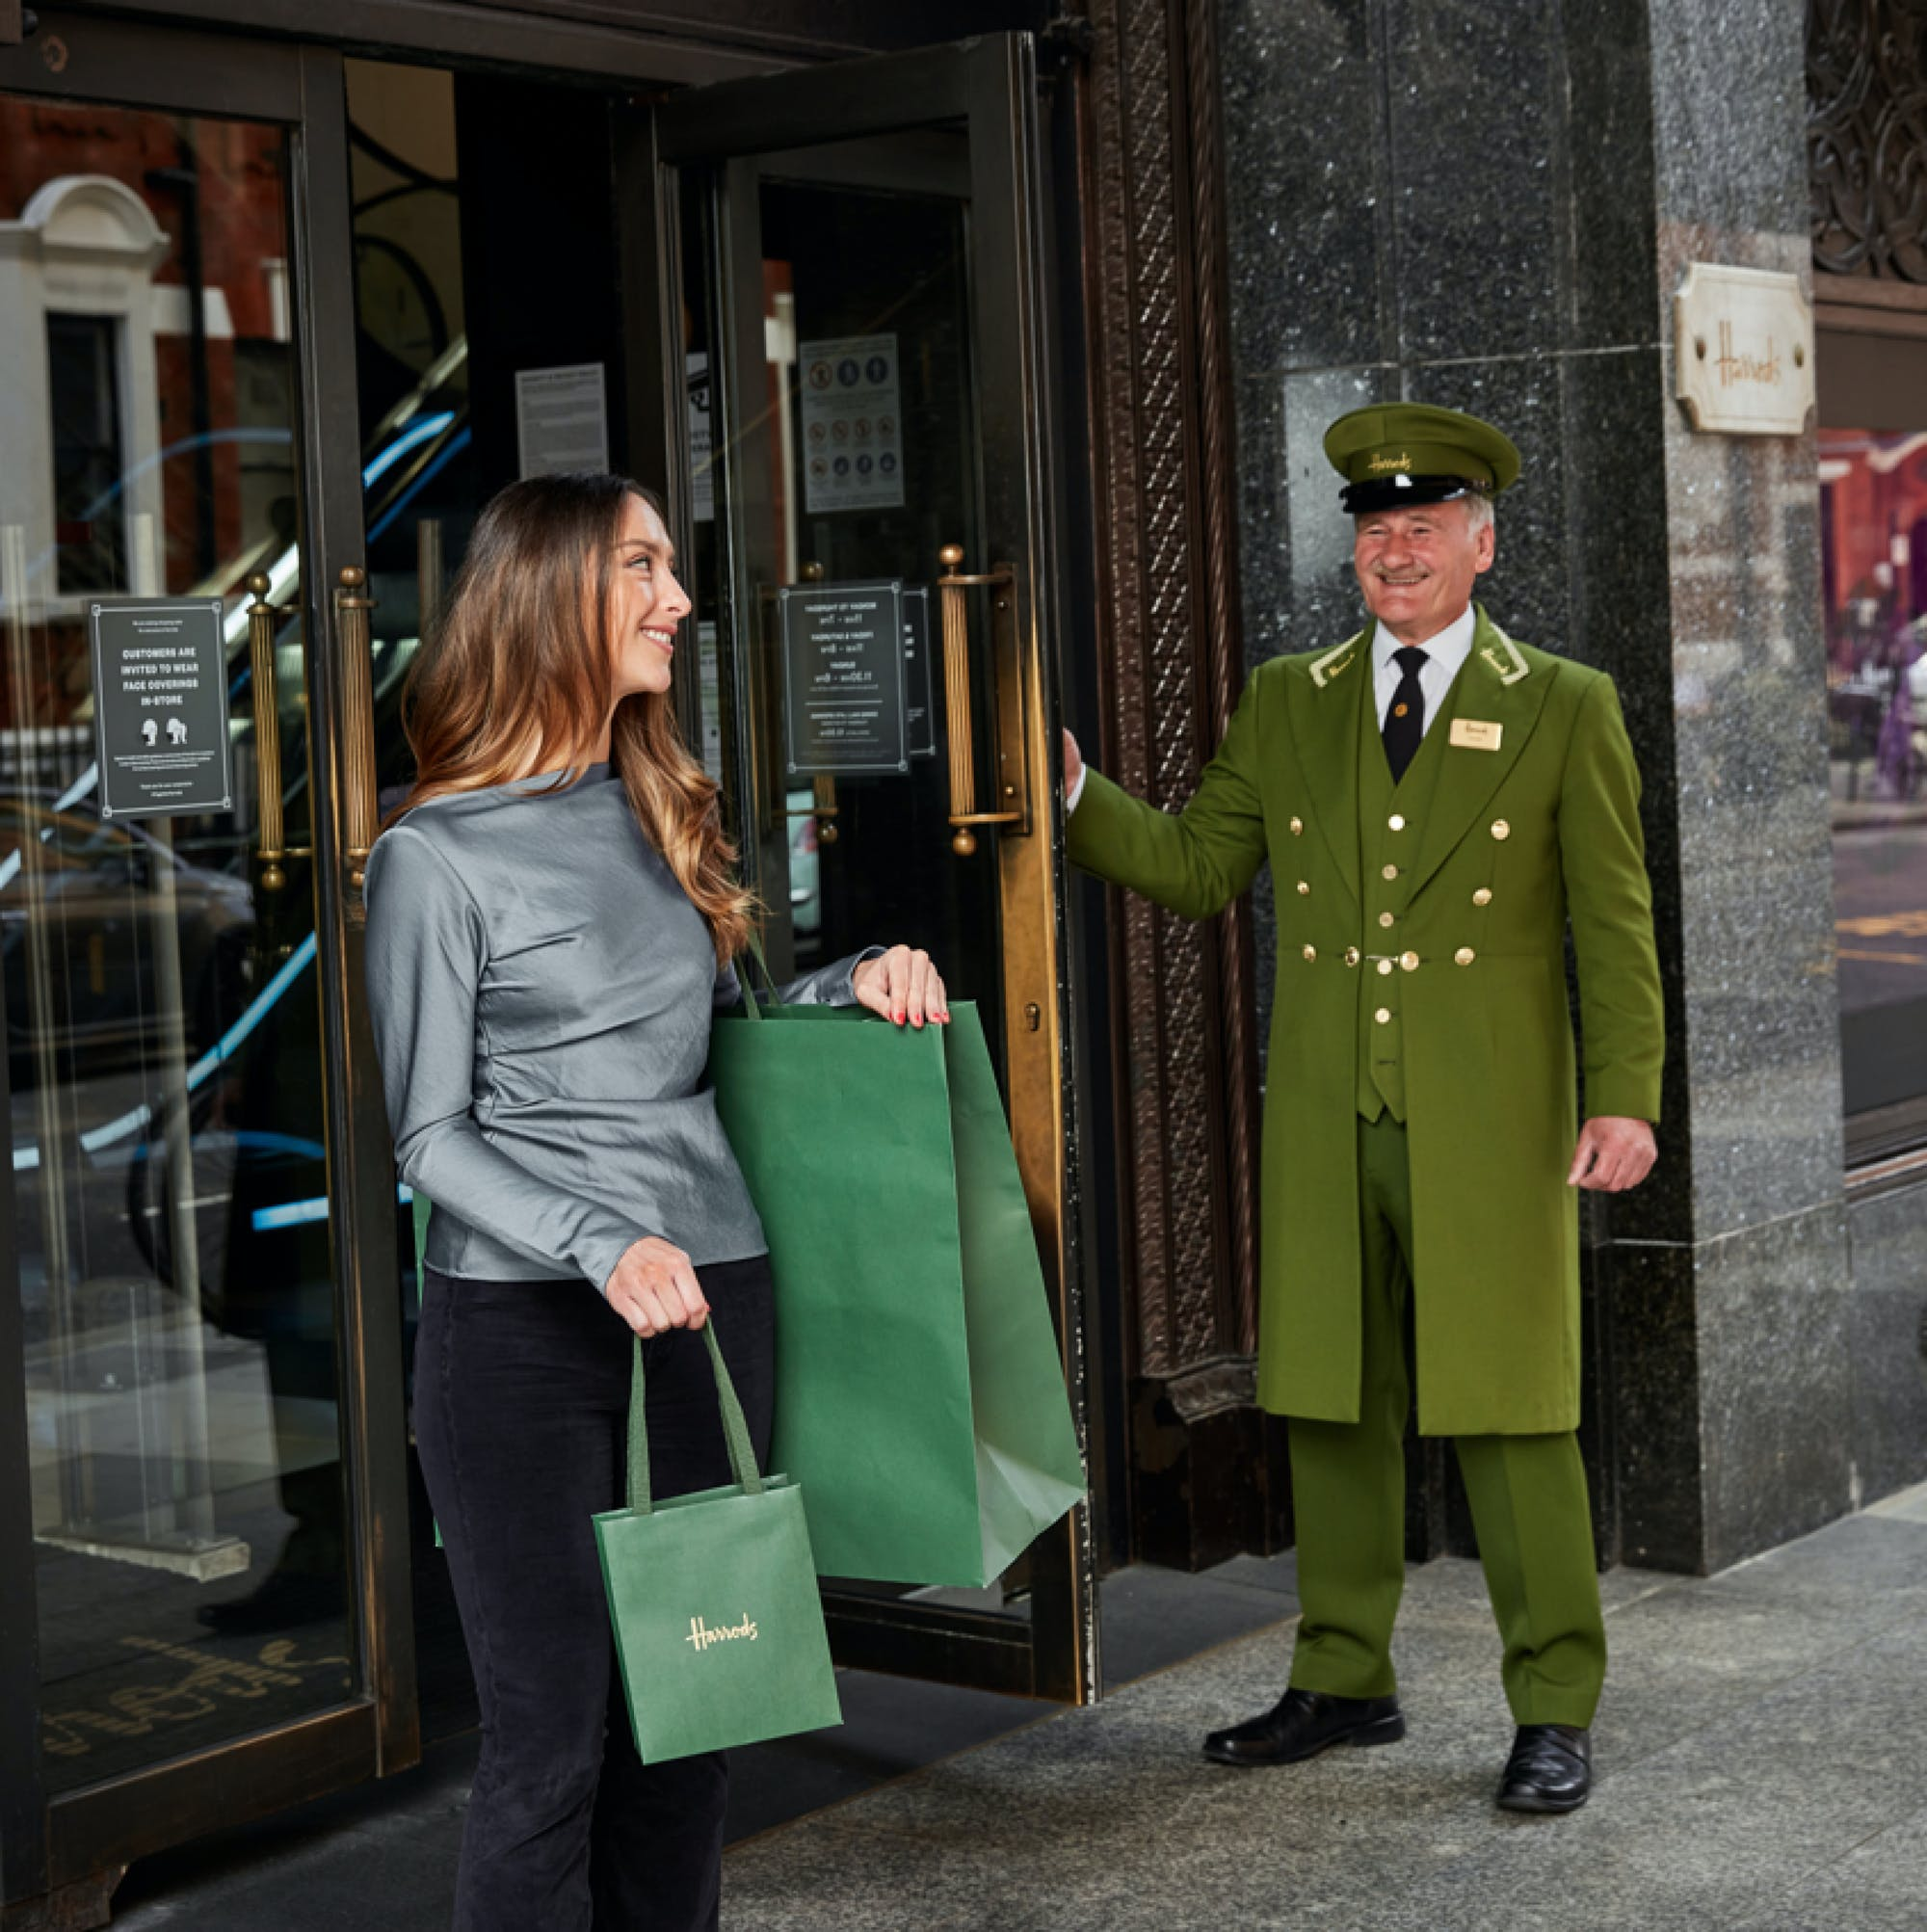 Sustainability Harrods' iconic green plasticbag gets a sustainable makeover